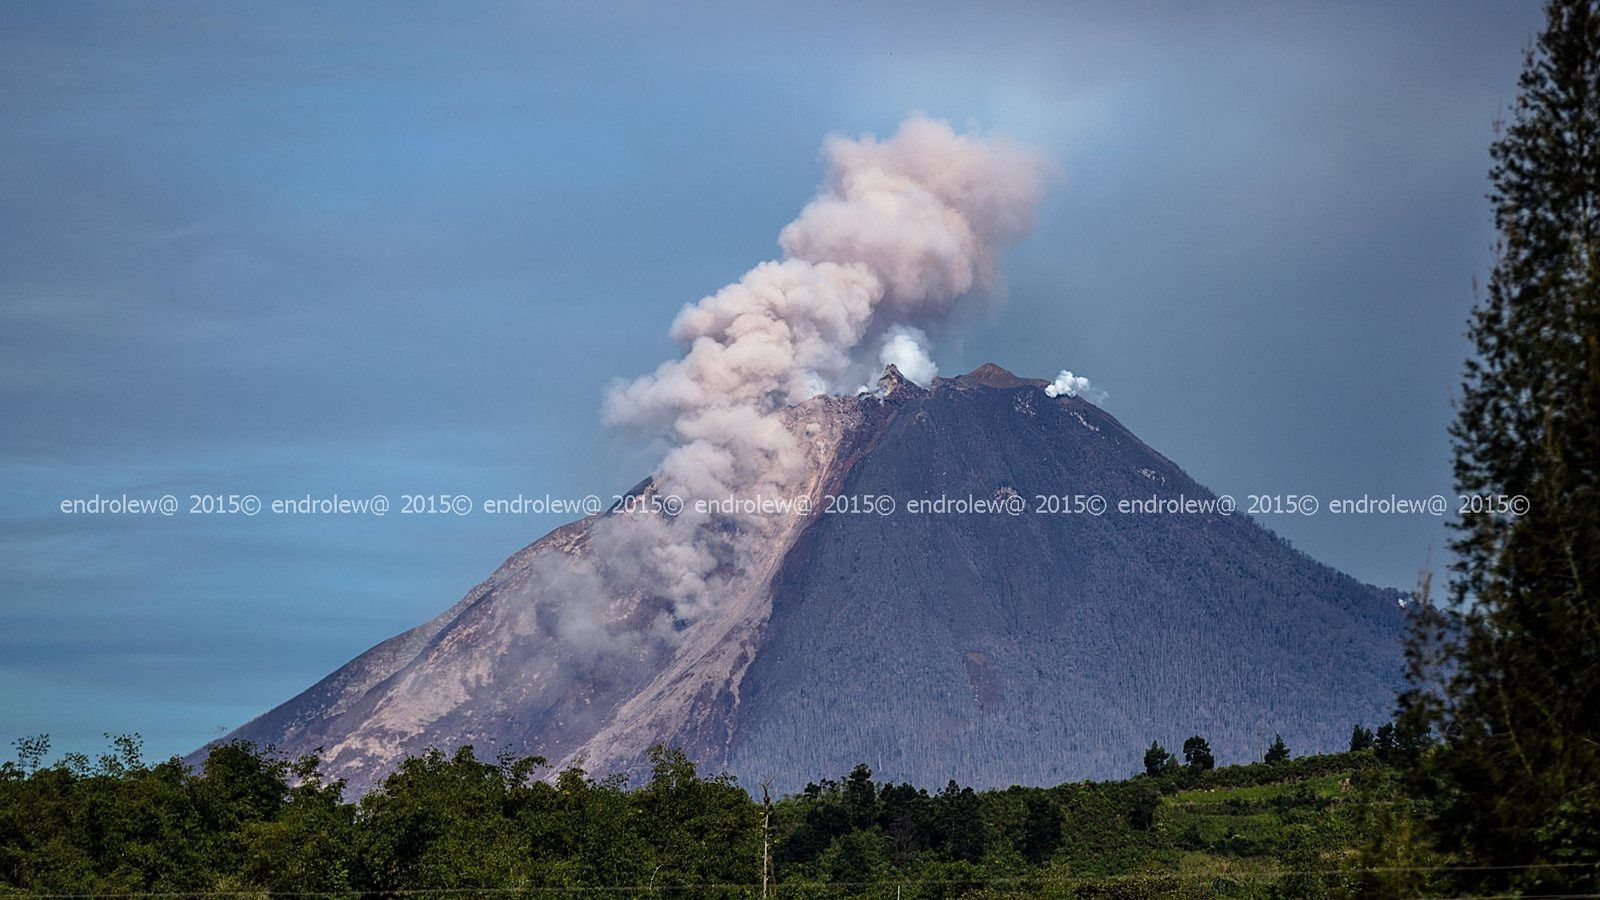 Sinabung - the 03.06.2015 / 9:11 - photo endrolew@